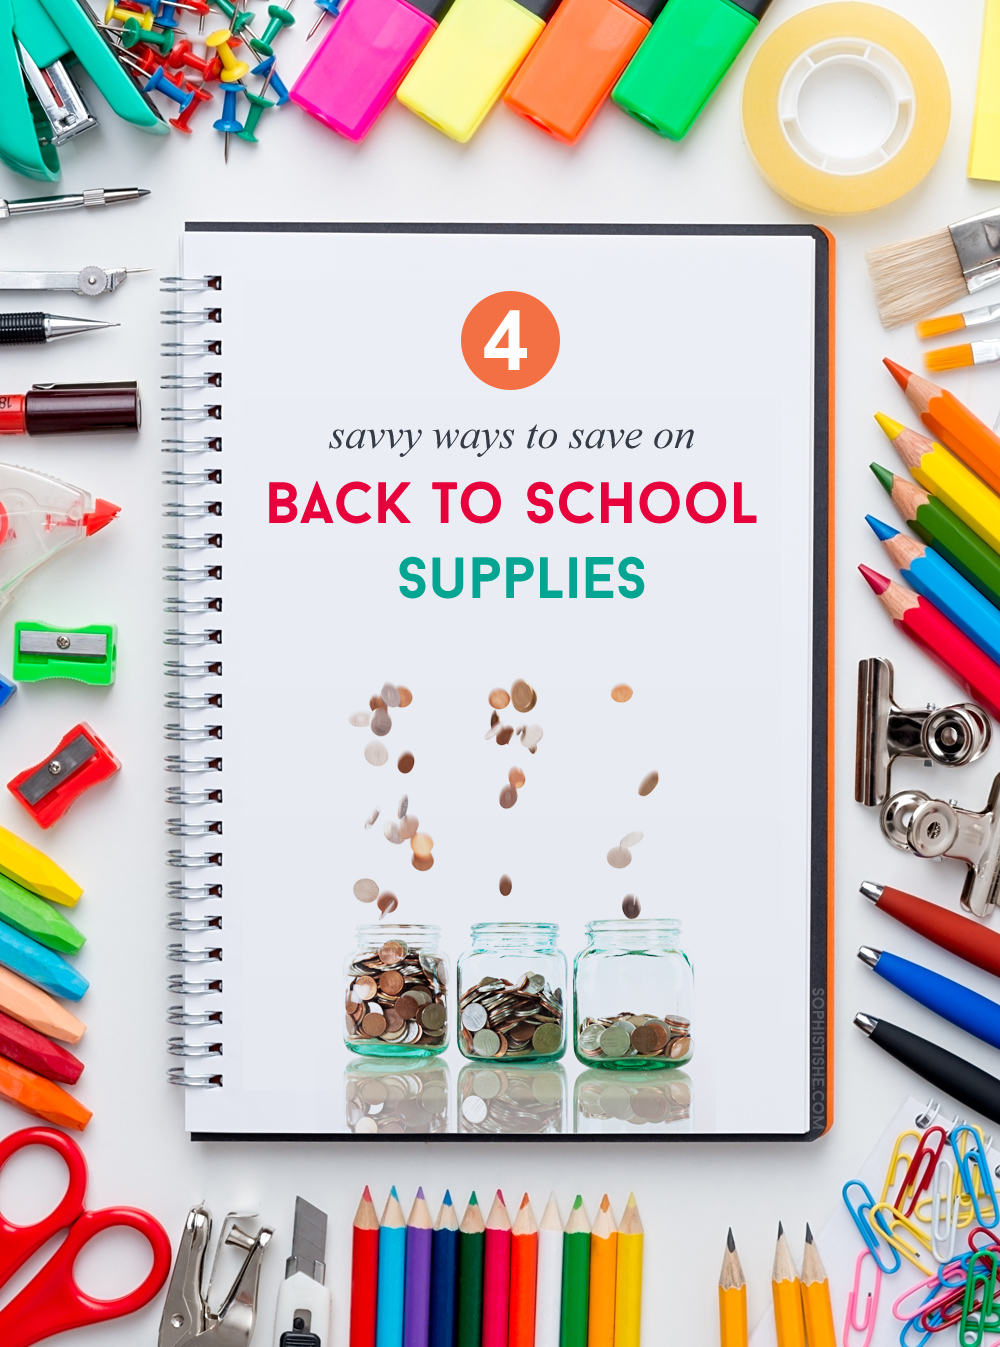 Savvy Ways To Save On Back To School Supplies